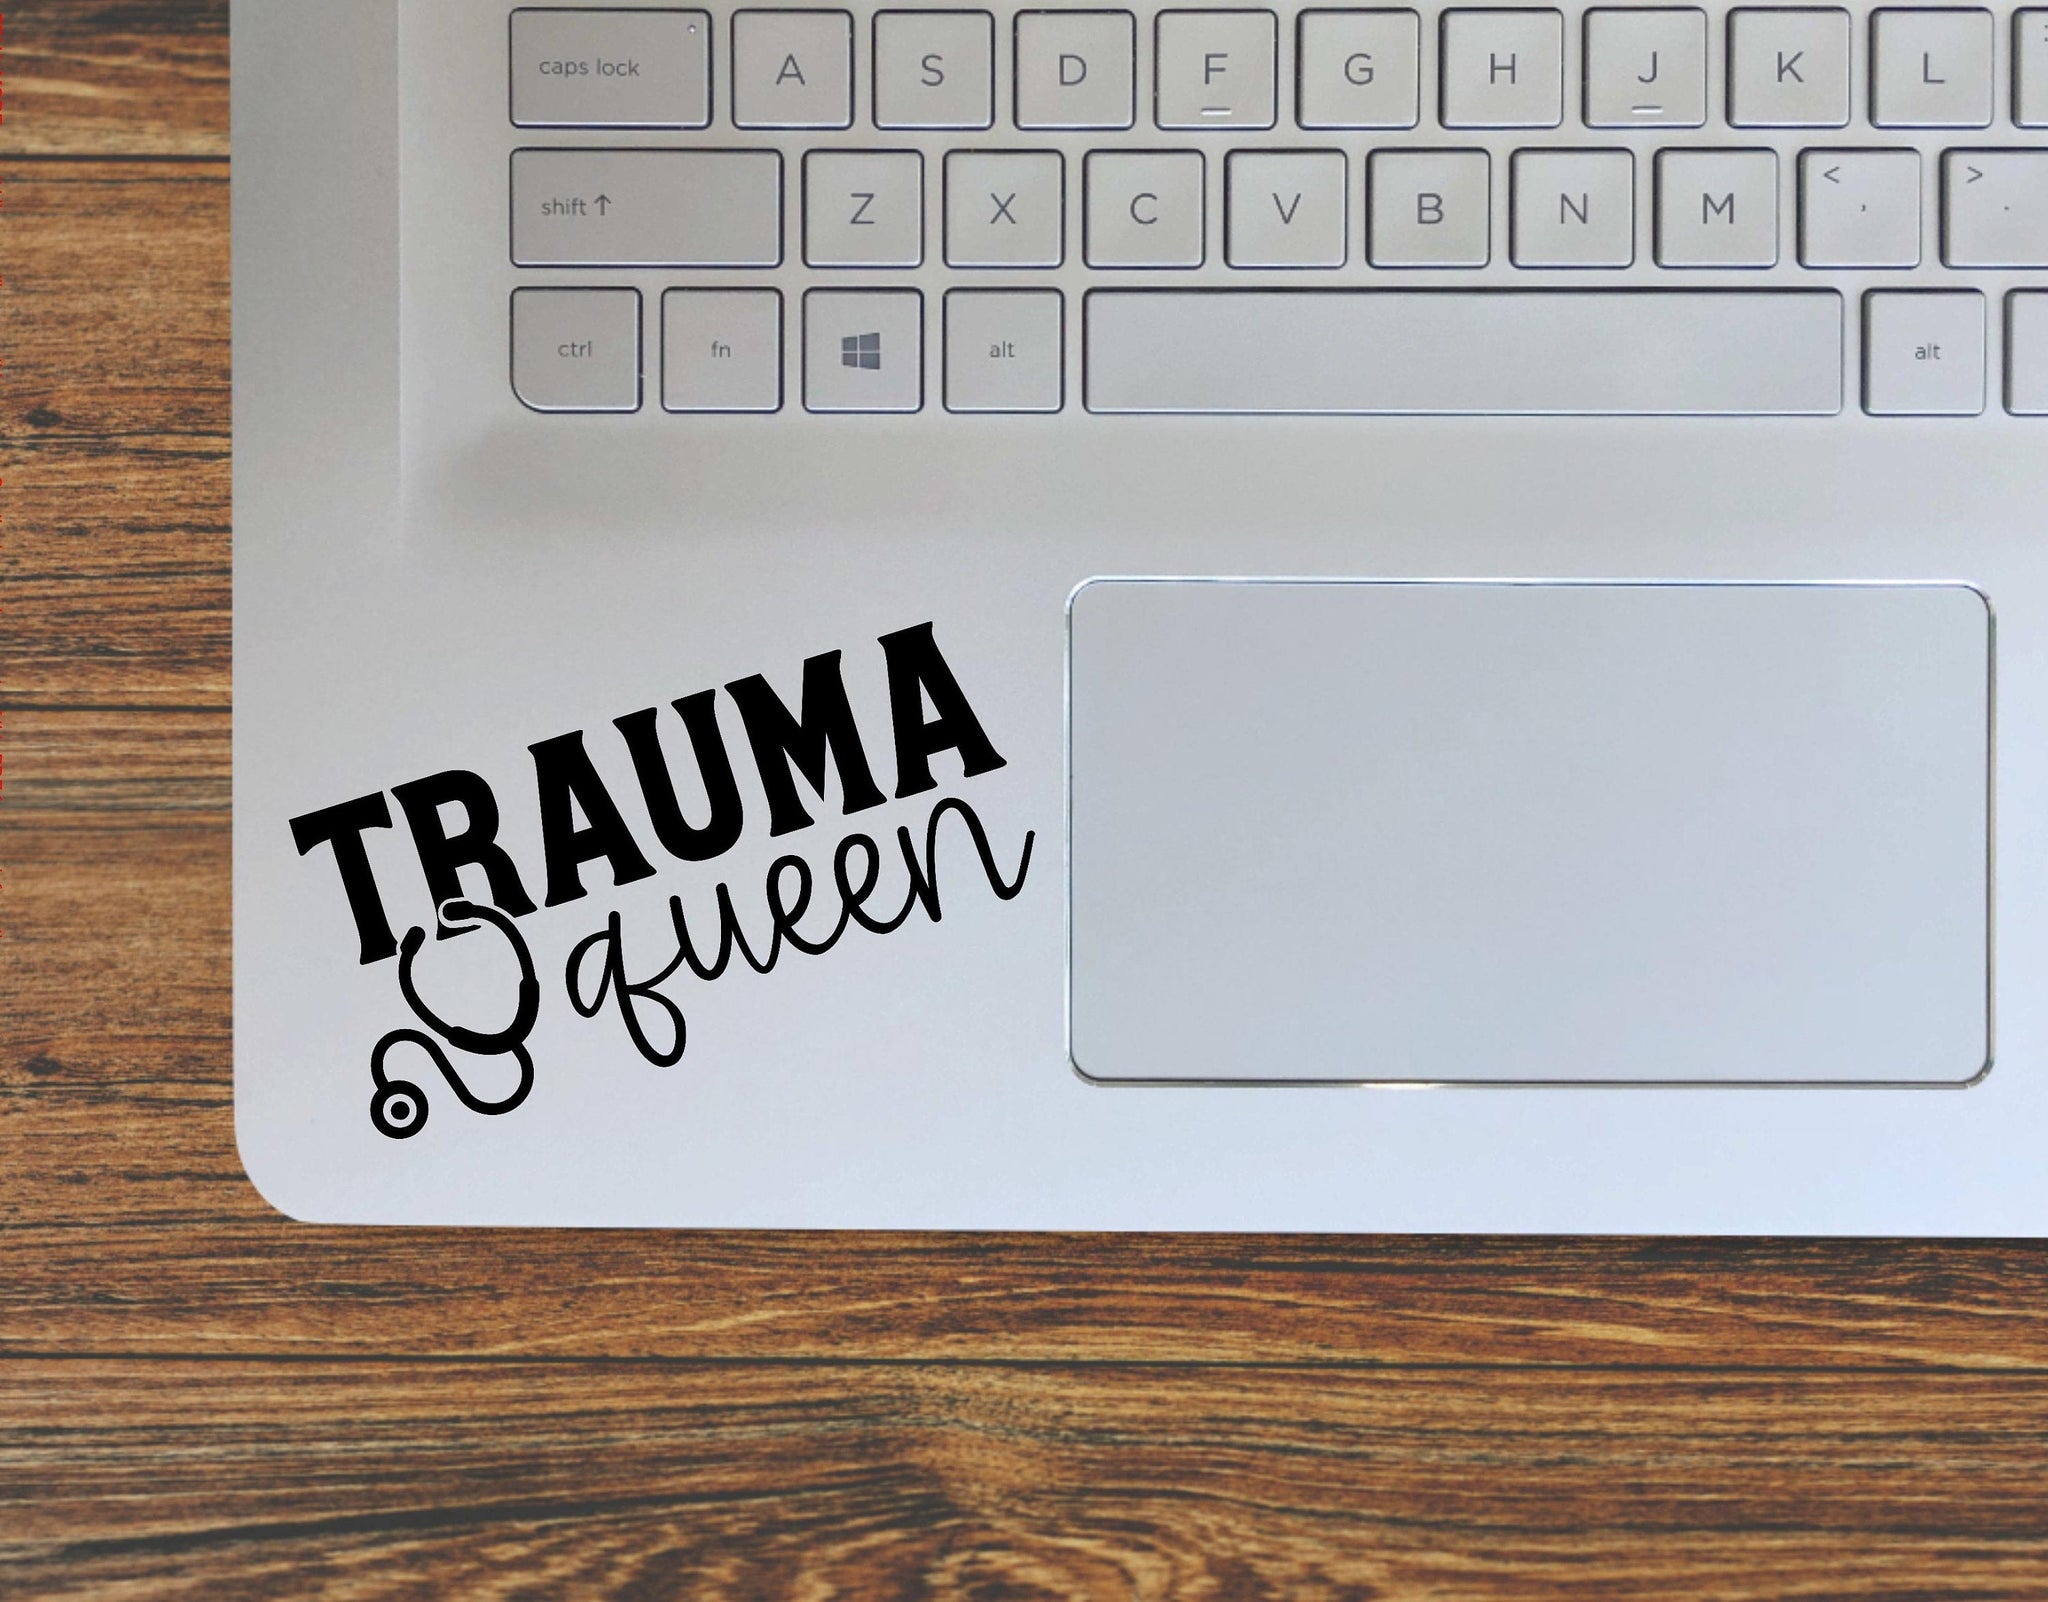 Trauma Queen Nurse Stethoscope Vinyl Decal Sticker